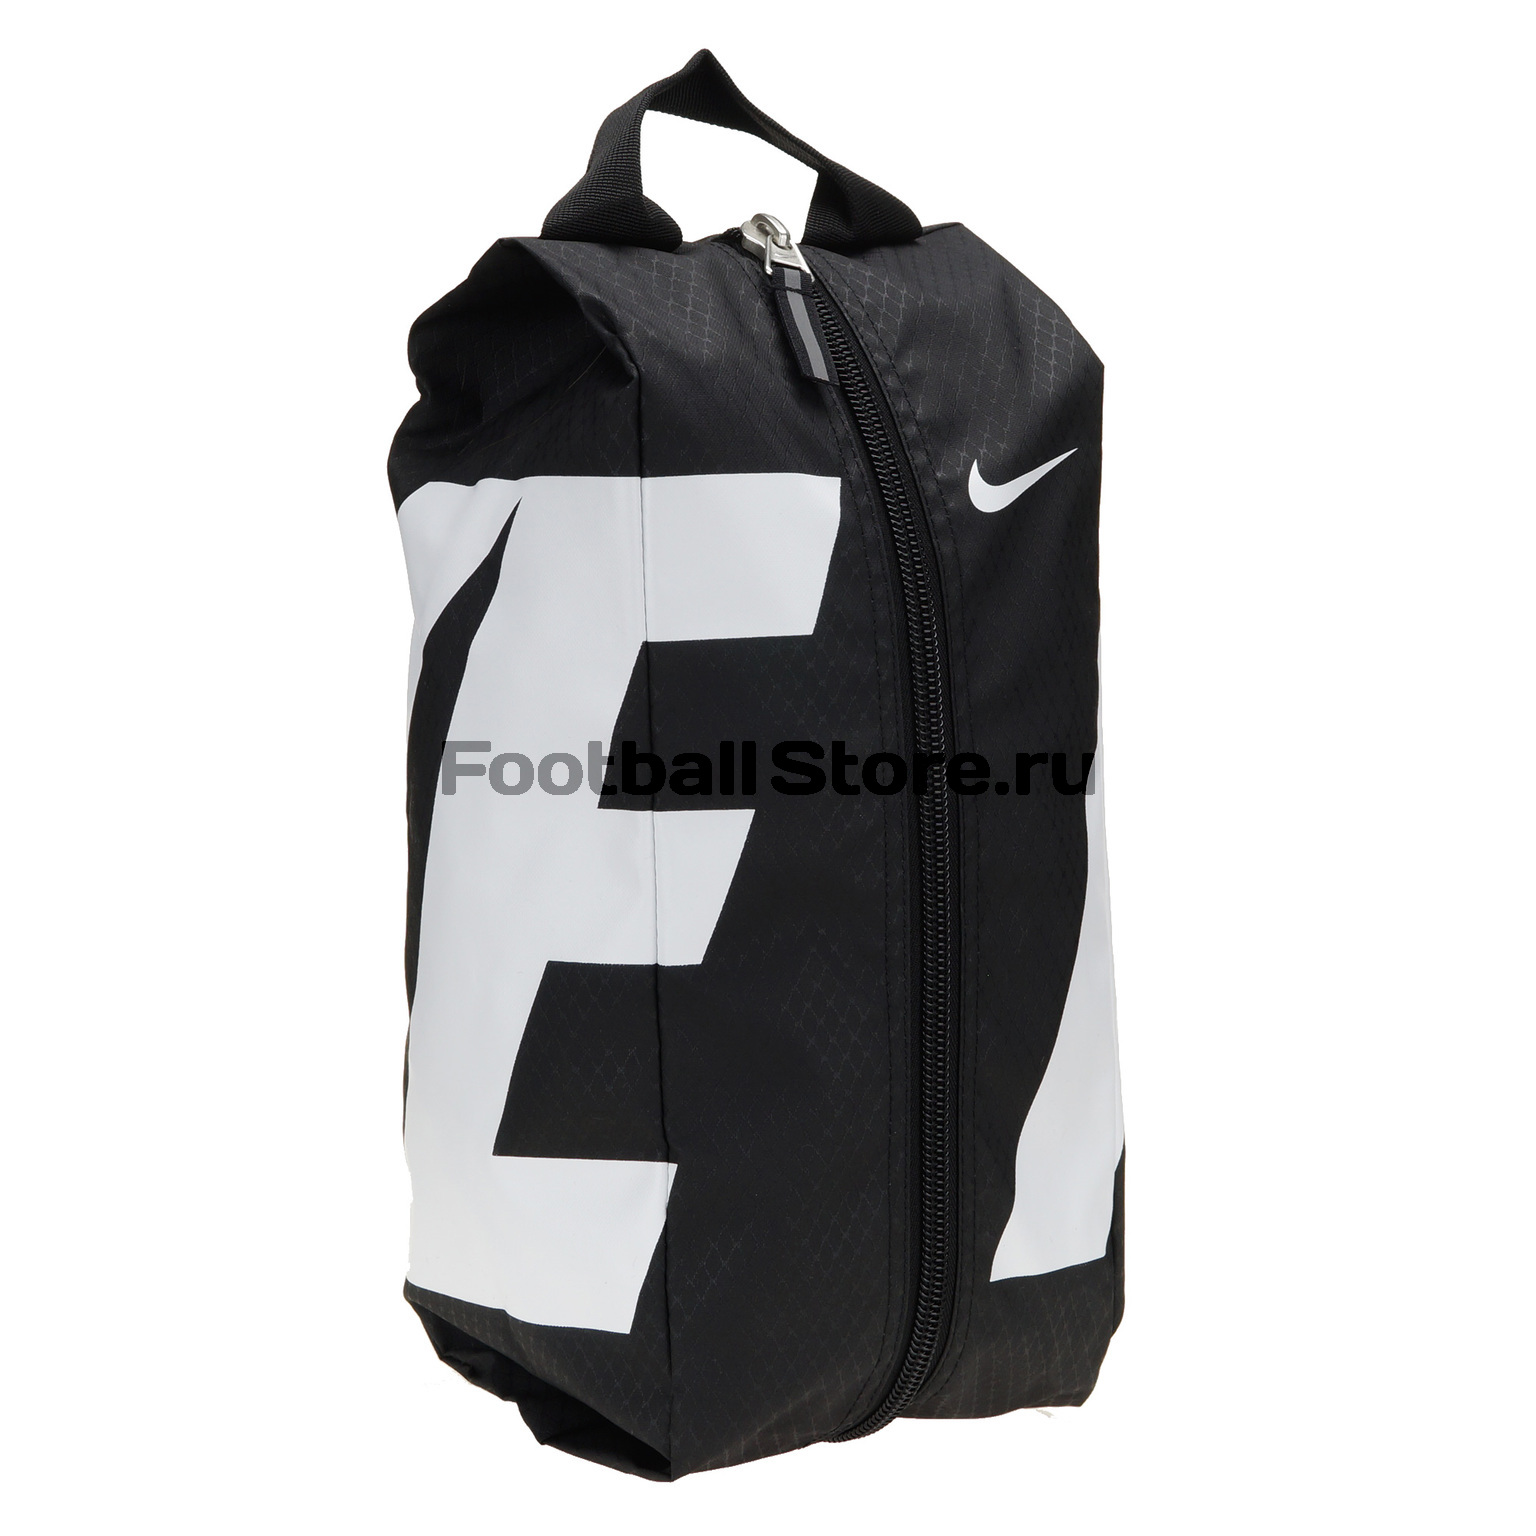 Сумка Nike Team Training Shoe Bag BA4926-001